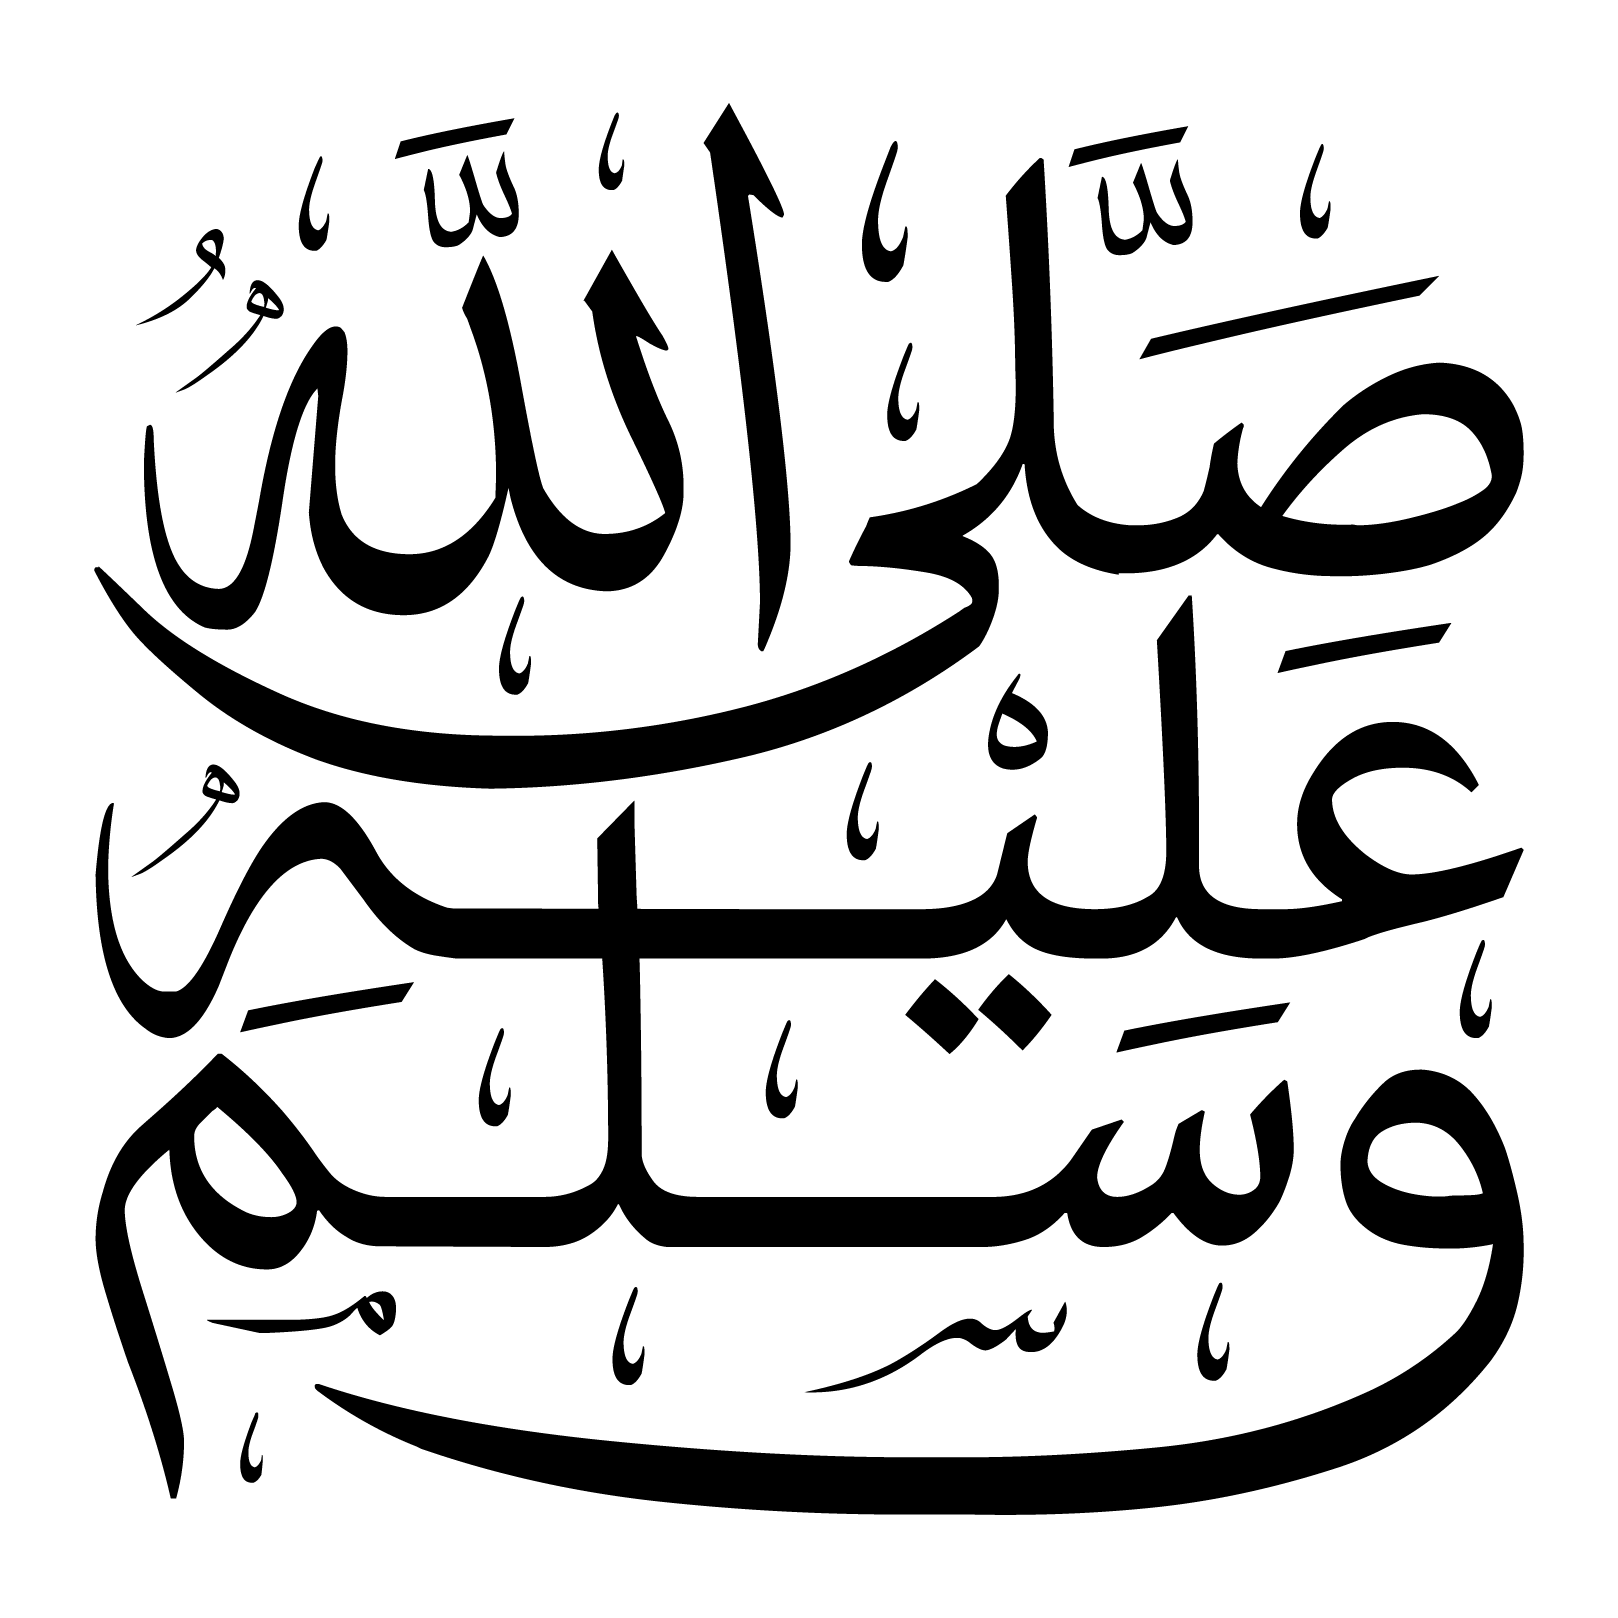 scripts salaa allah aalayh wasalam islamic svg eps psd ai pdf png vector download free #islamic #islam #arab #arabic #vector #vectors  #scripts #fonts #font